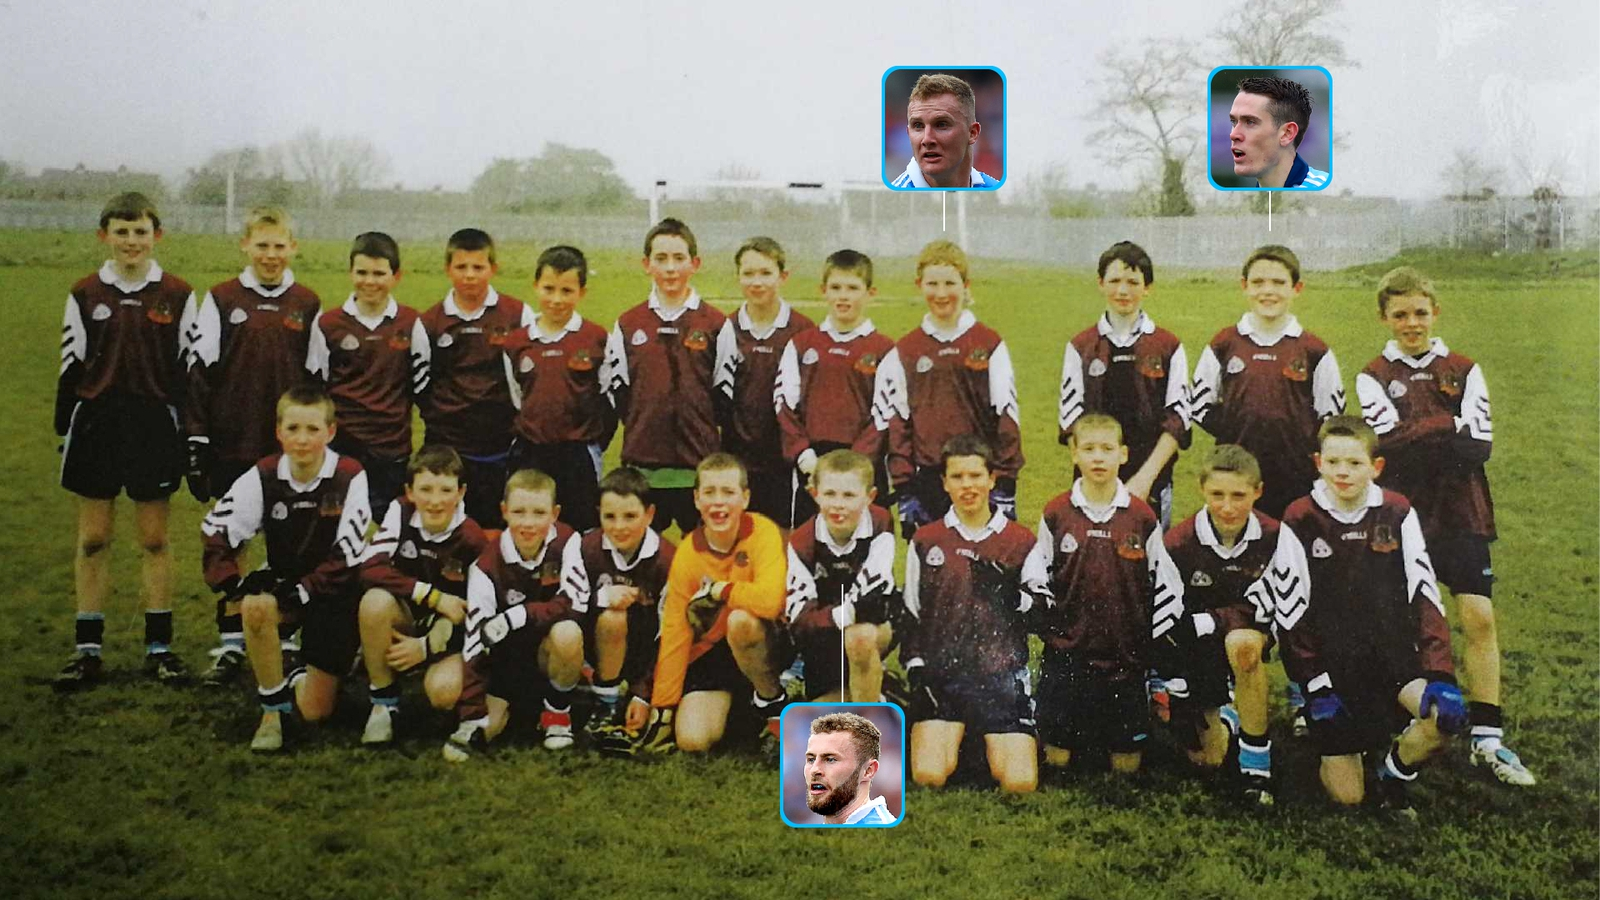 Image - The victorious 2005 North Dublin U-12 team. John O'Sullivan is back row, fifth from left